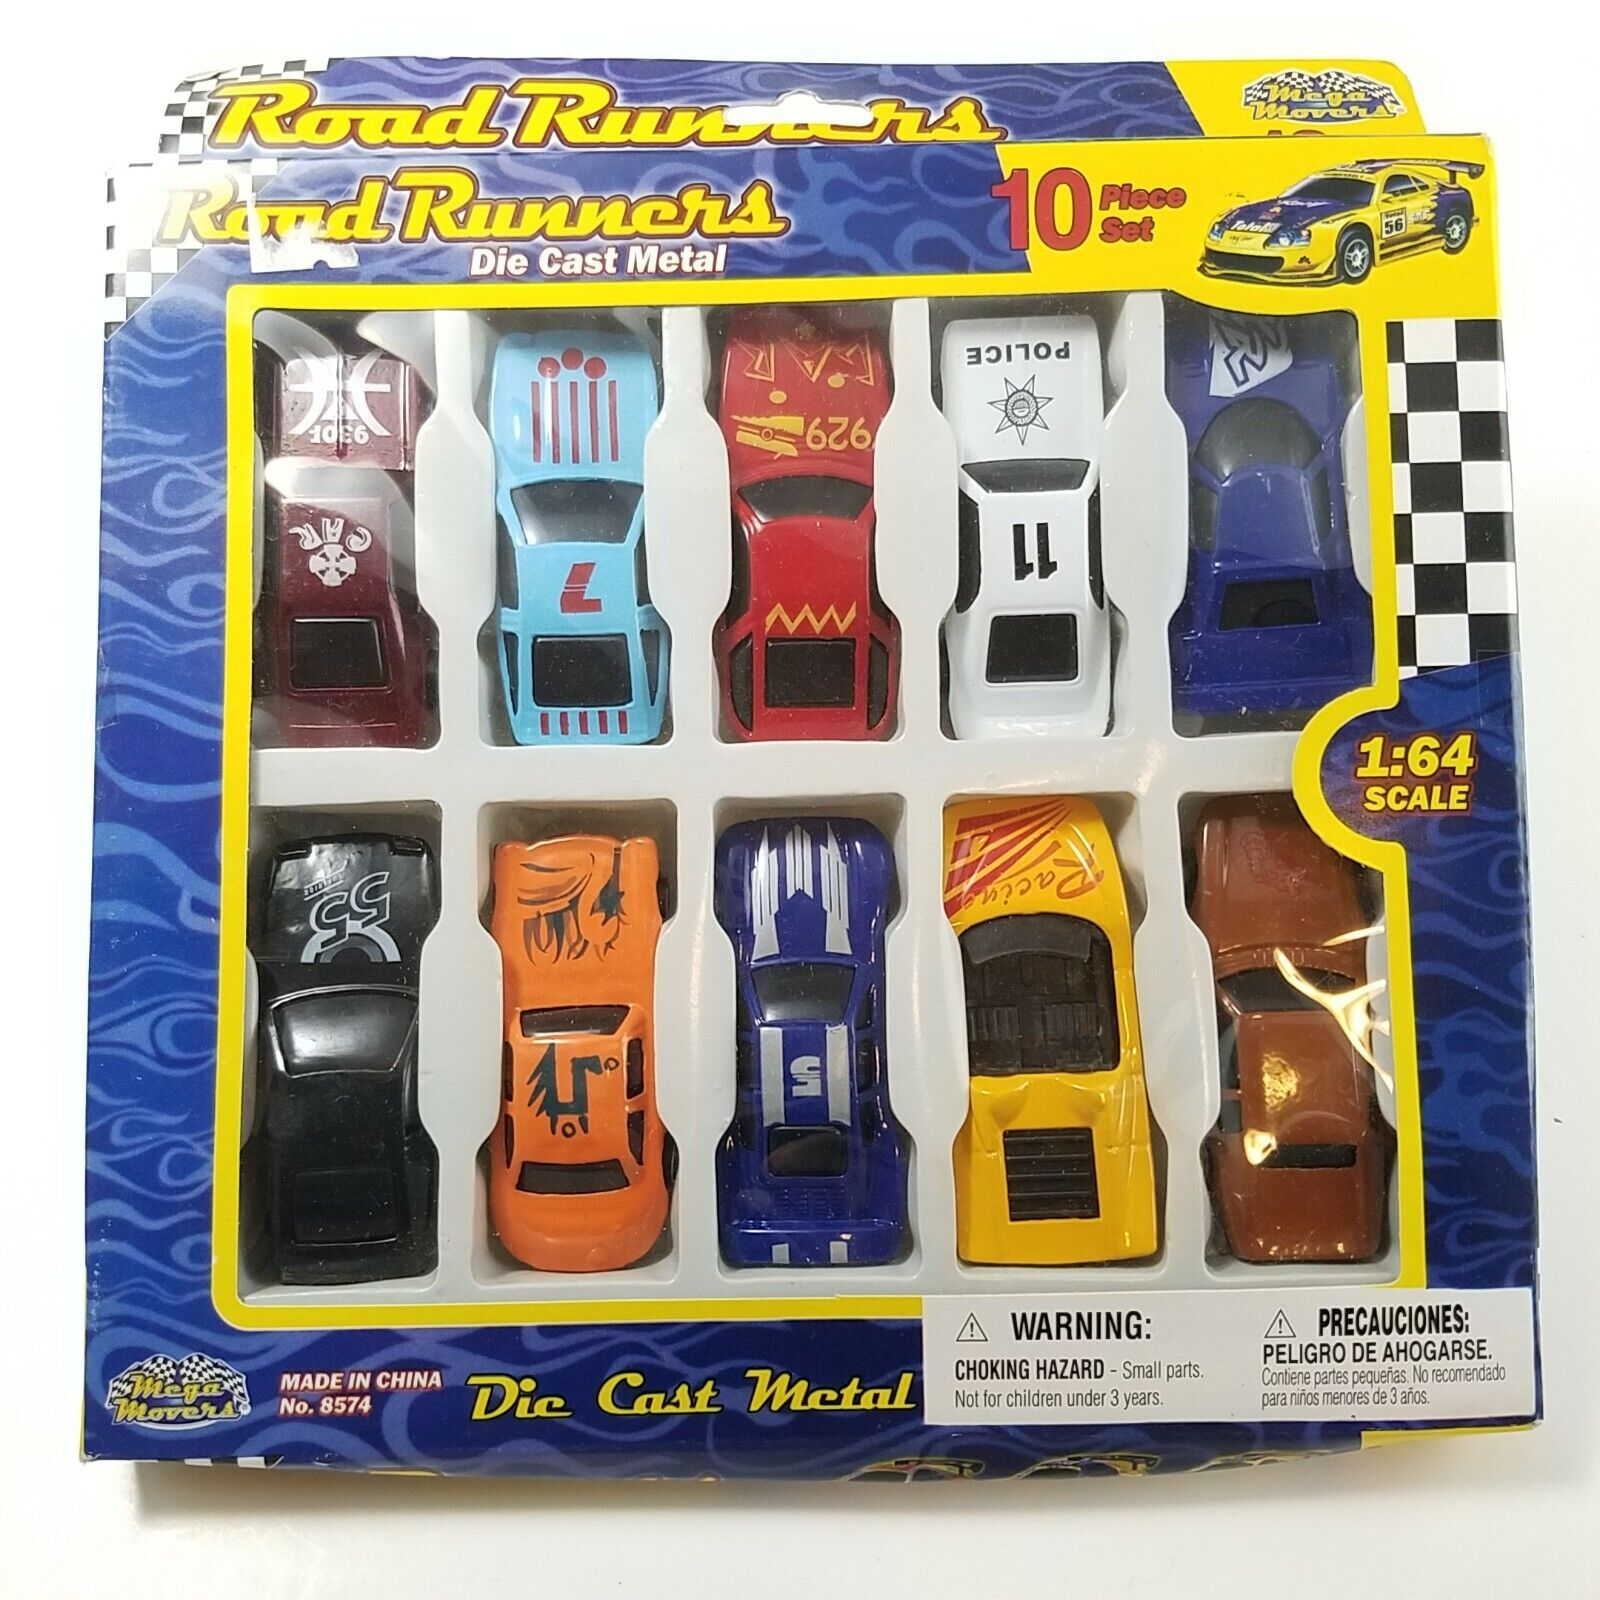 Road Runners toy car and hobby set.